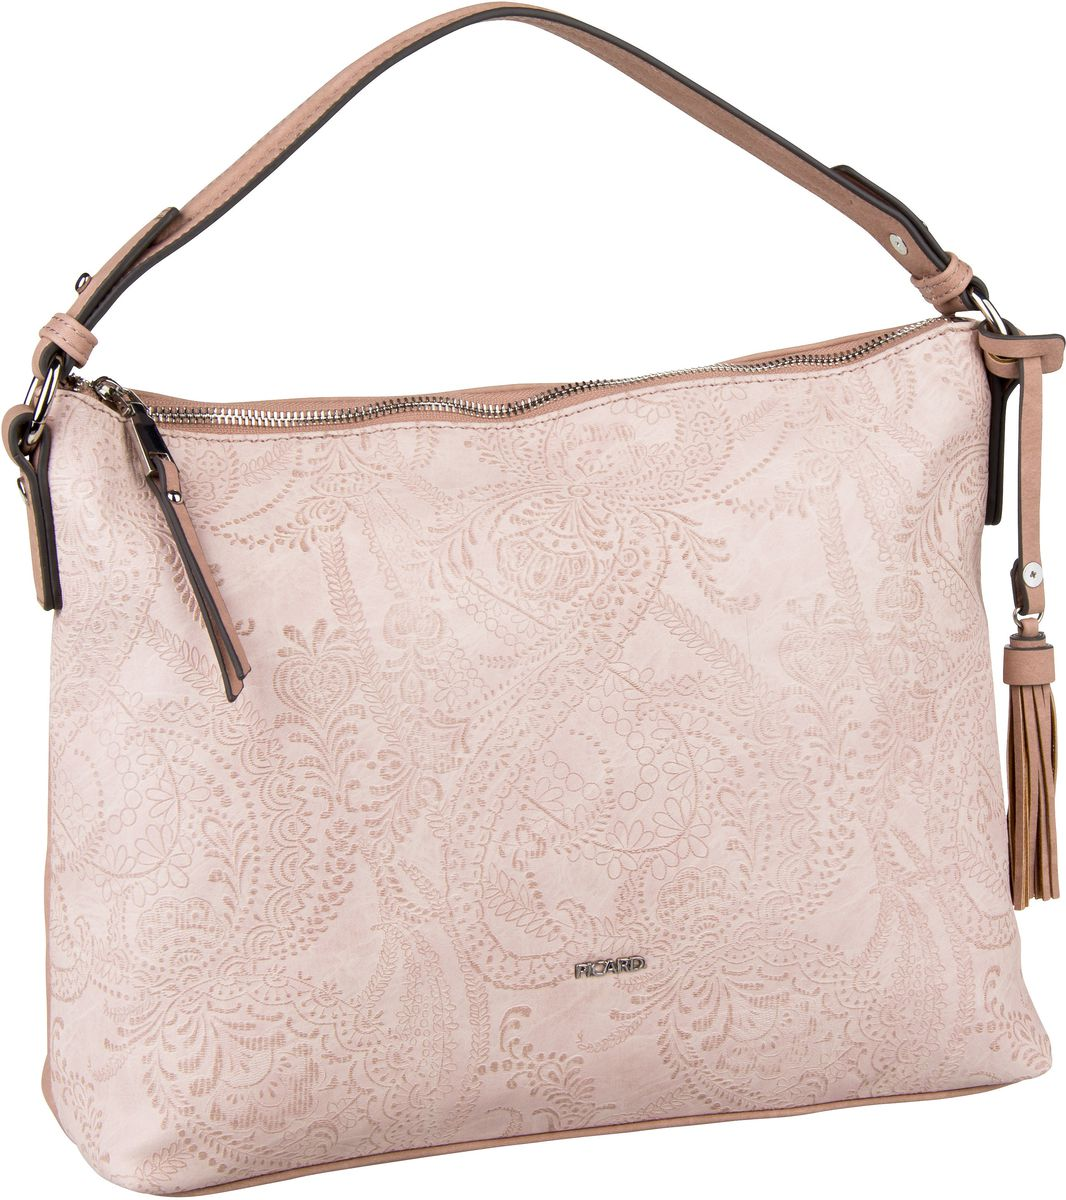 Handtasche Stephanie 2585 Powder